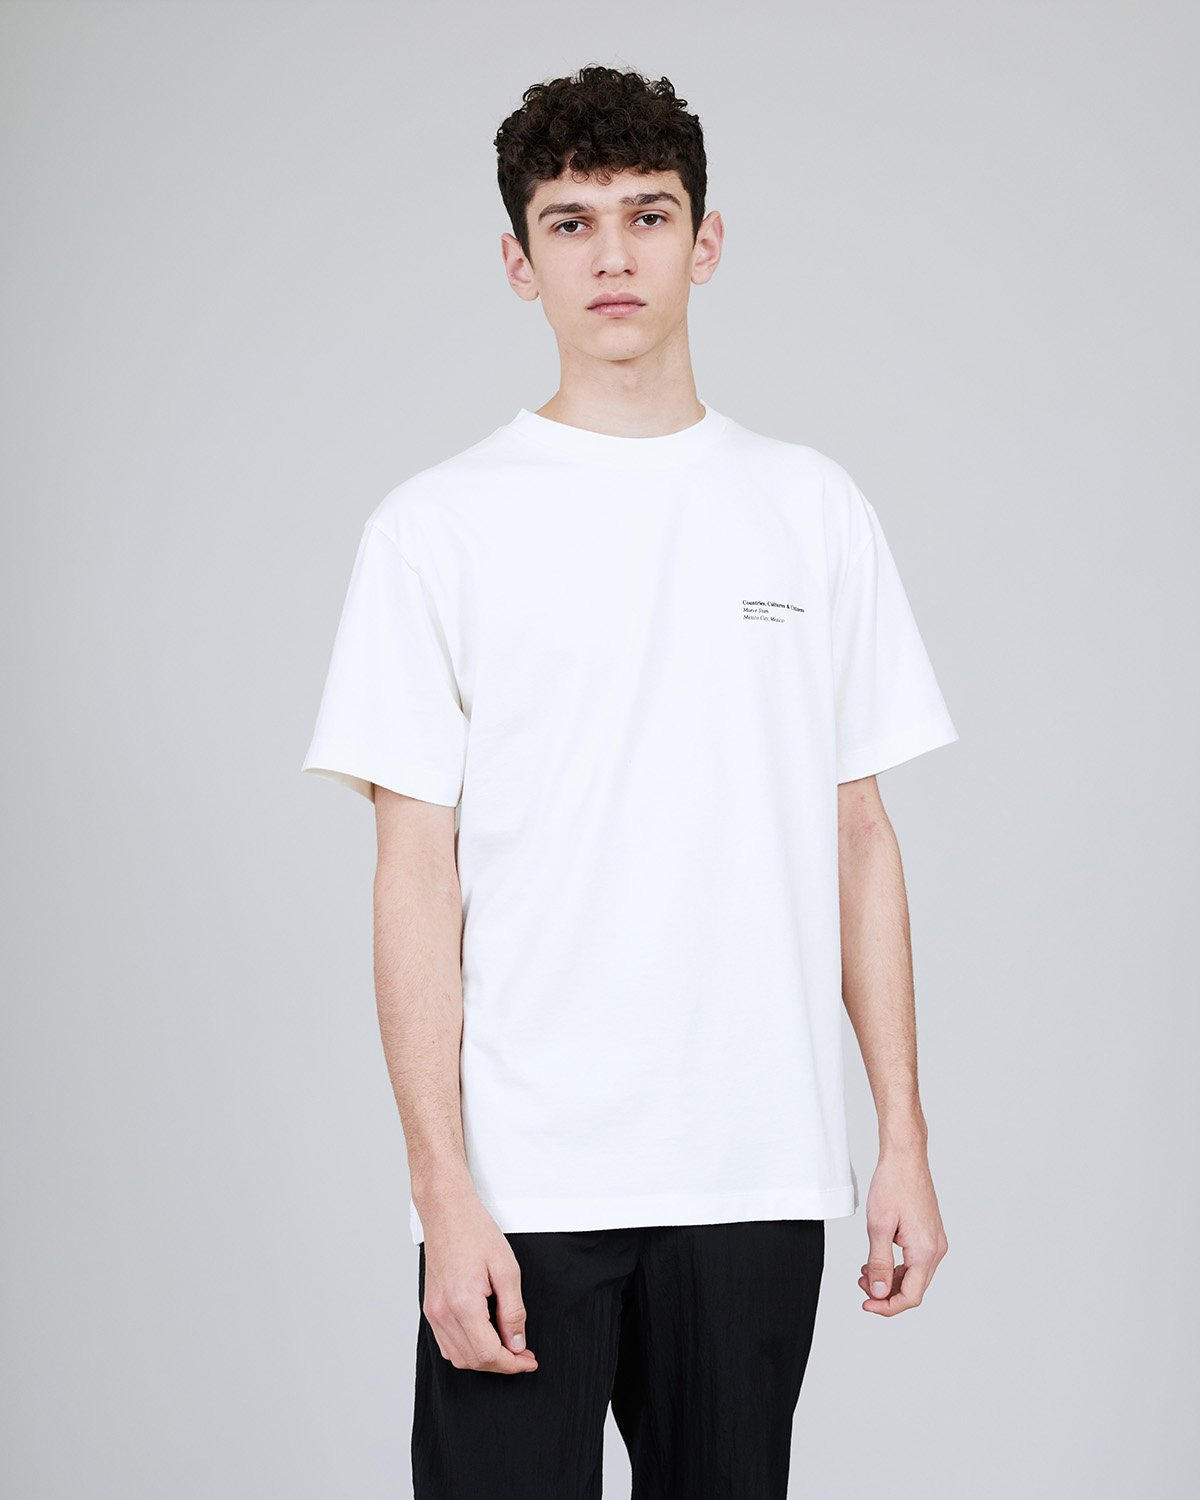 ØLÅF x Halal T - Maeve Stam White, Portuguese fabric, 100% cotton (220 grams/sqm), Post wash, Fine ribbed collar, Made in Portugal